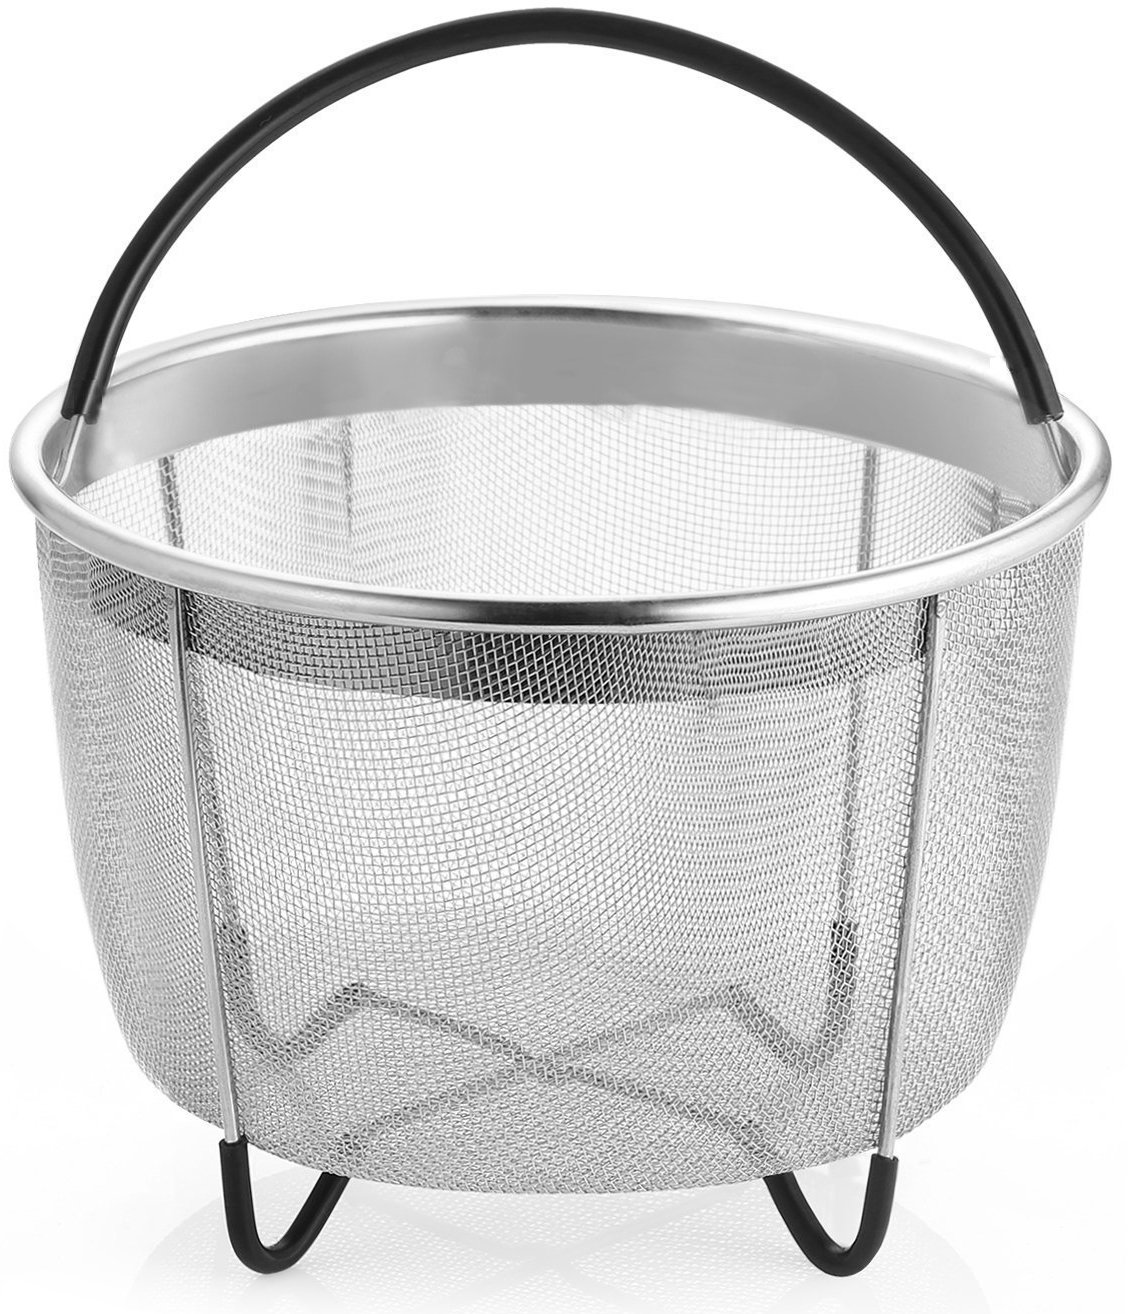 Steamer Basket Compatible Instant Pot Accessories 6 qt,Stainless Steel Strainer and Insert Fits 6qt & 8qt Other Pressure Cookers,Egg Basket with Silicone Handle and Non-Slip Legs